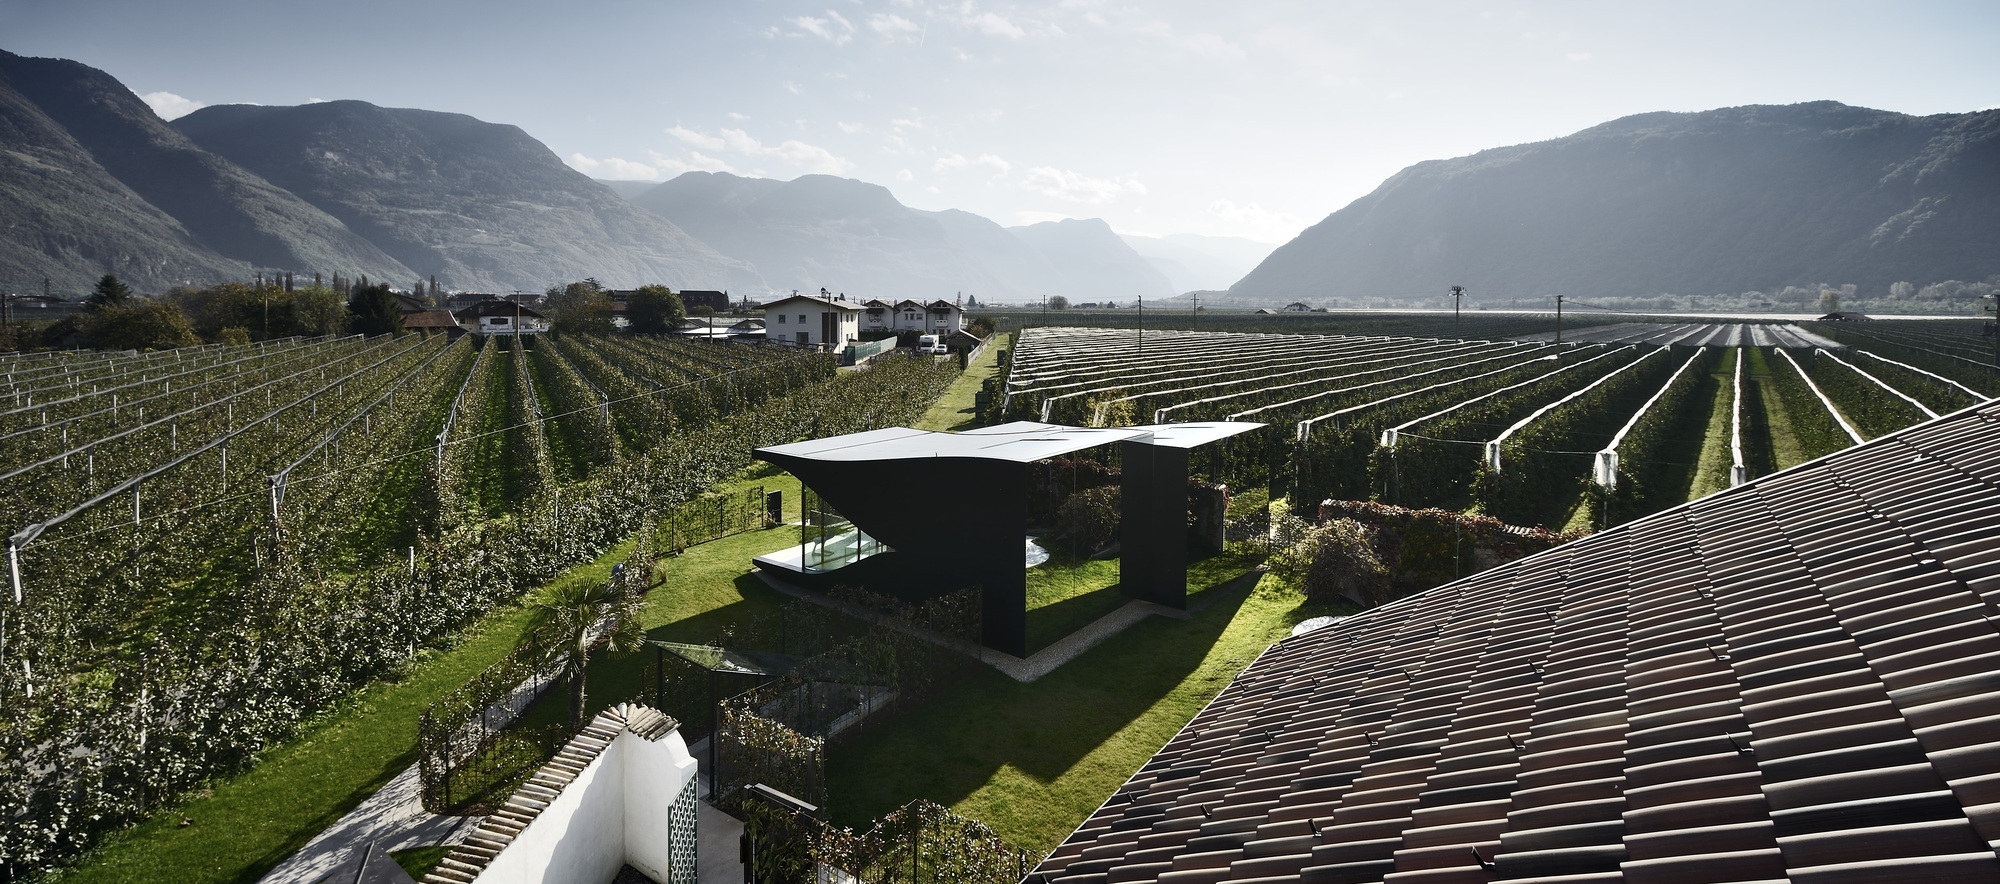 The Mirror Houses / Peter Pichler Architecture (26)